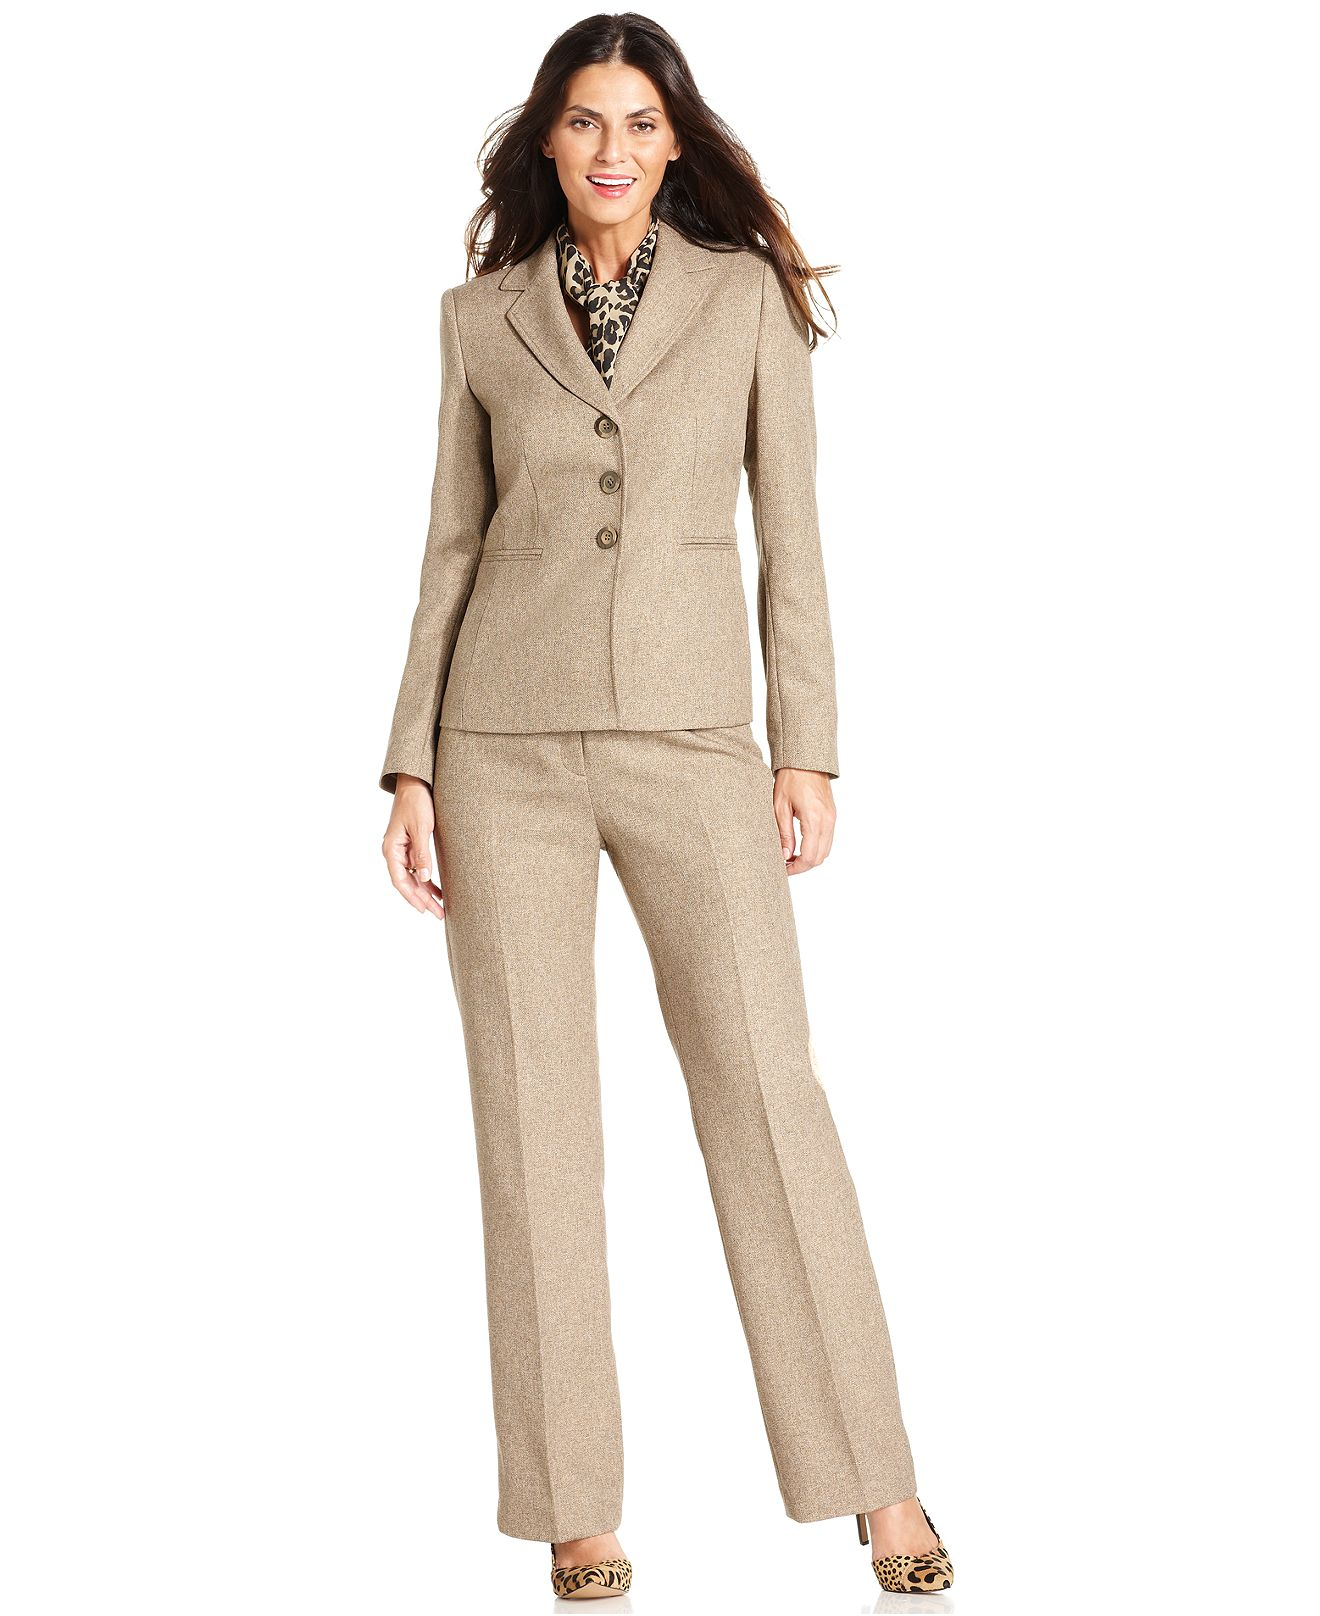 pants suits for weddings photo - 1